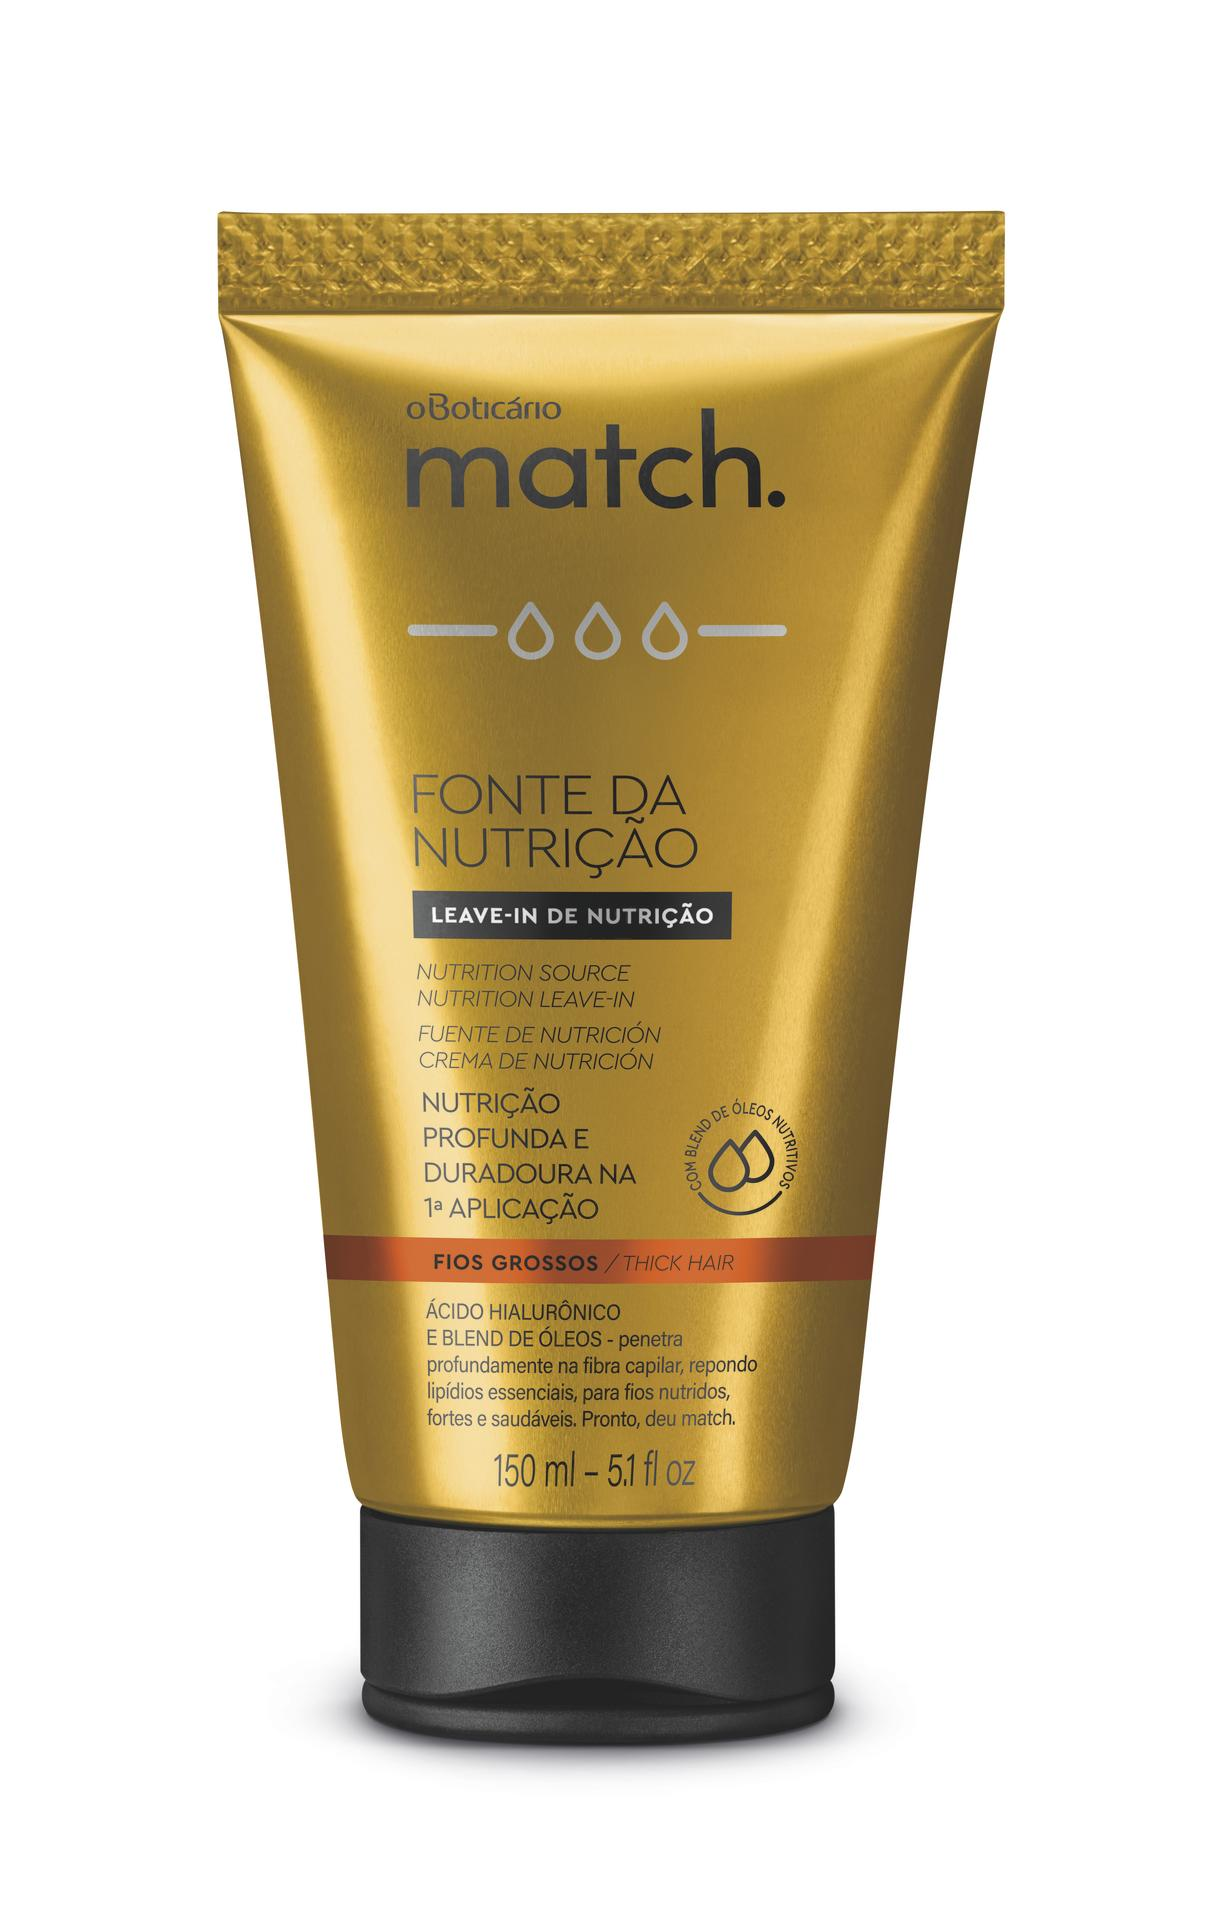 Match-Nutrition-Source-Leave-in